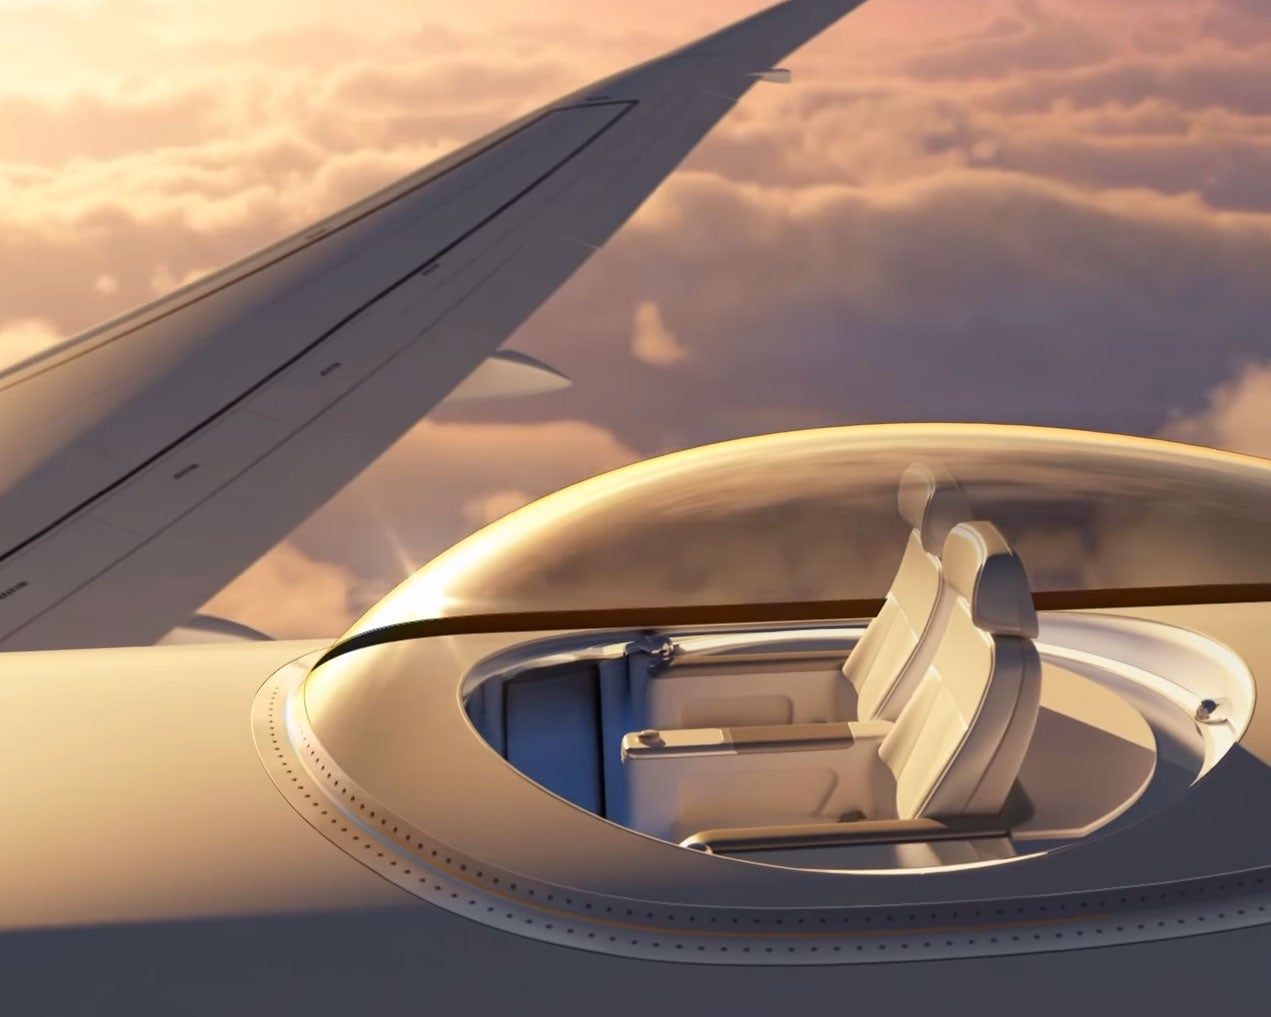 The new first-class air travel for the super (super) rich | The Independentindependent_brand_ident_LOGOUntitled